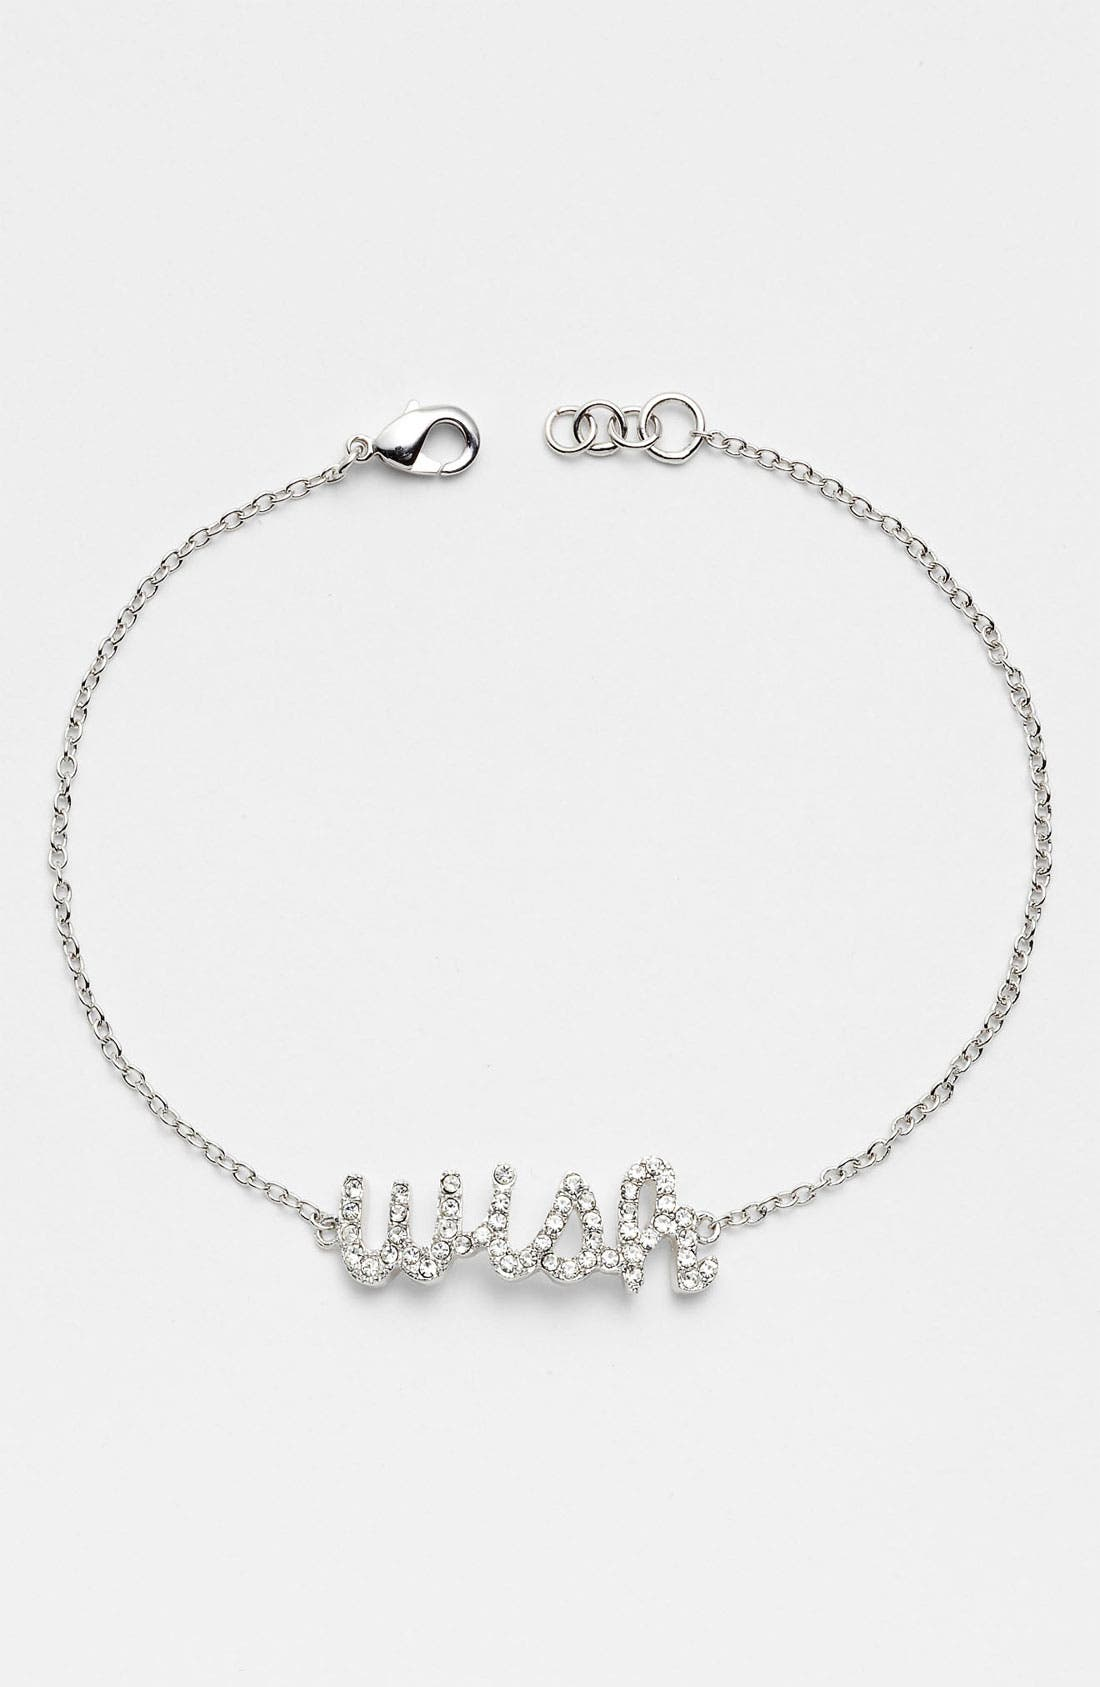 Alternate Image 1 Selected - Ariella Collection 'Messages - Wish' Script Station Bracelet